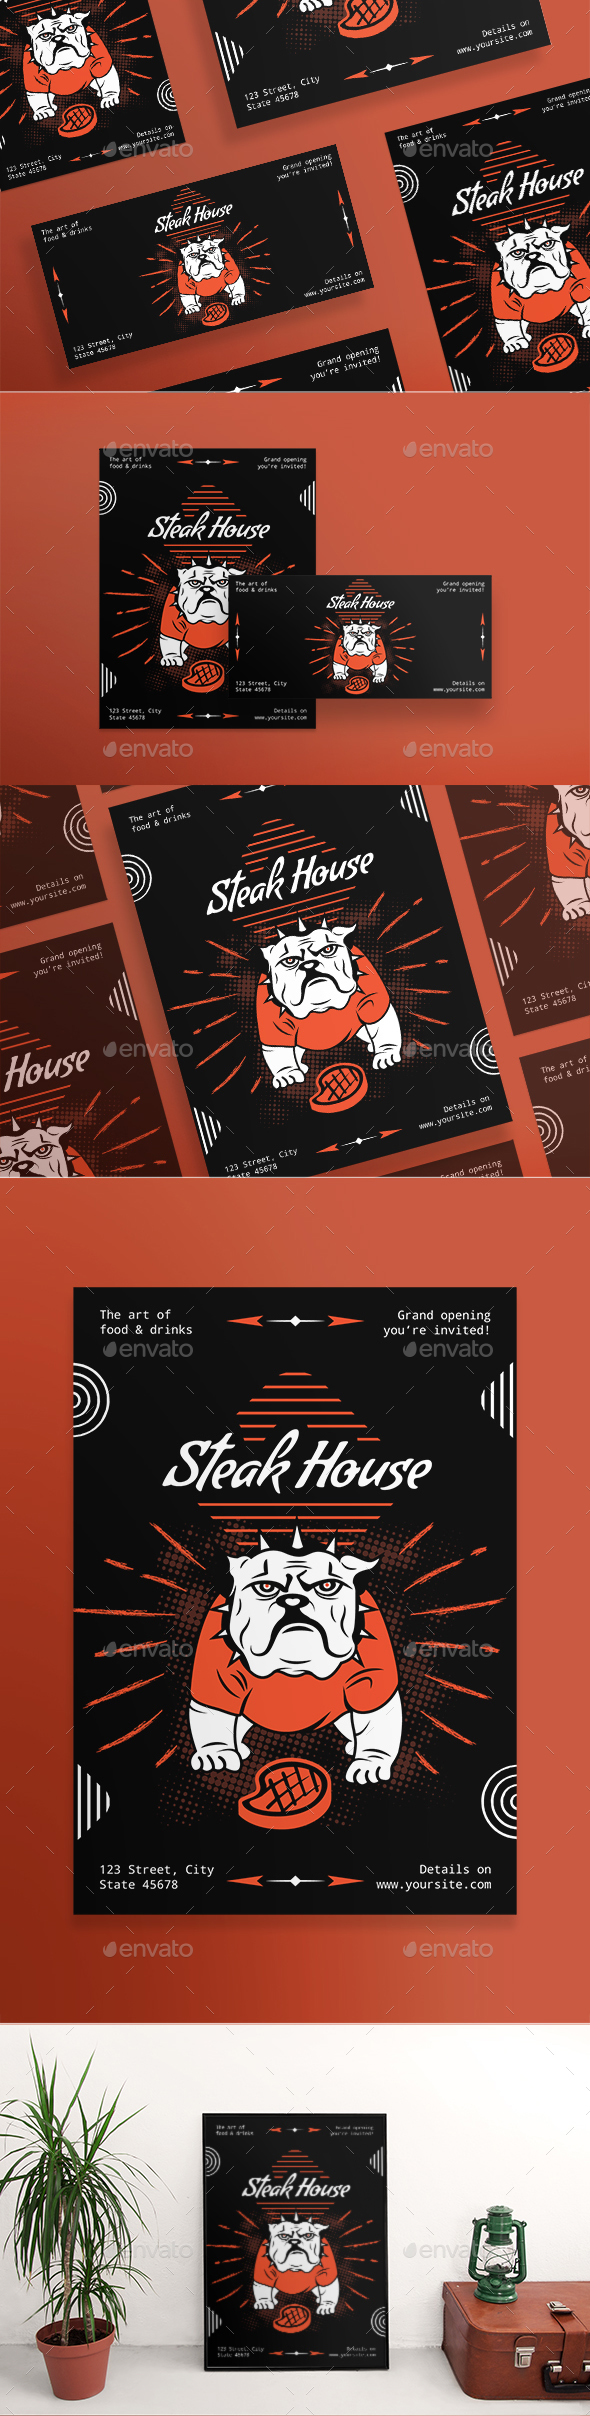 Steak House Flyers - Restaurant Flyers